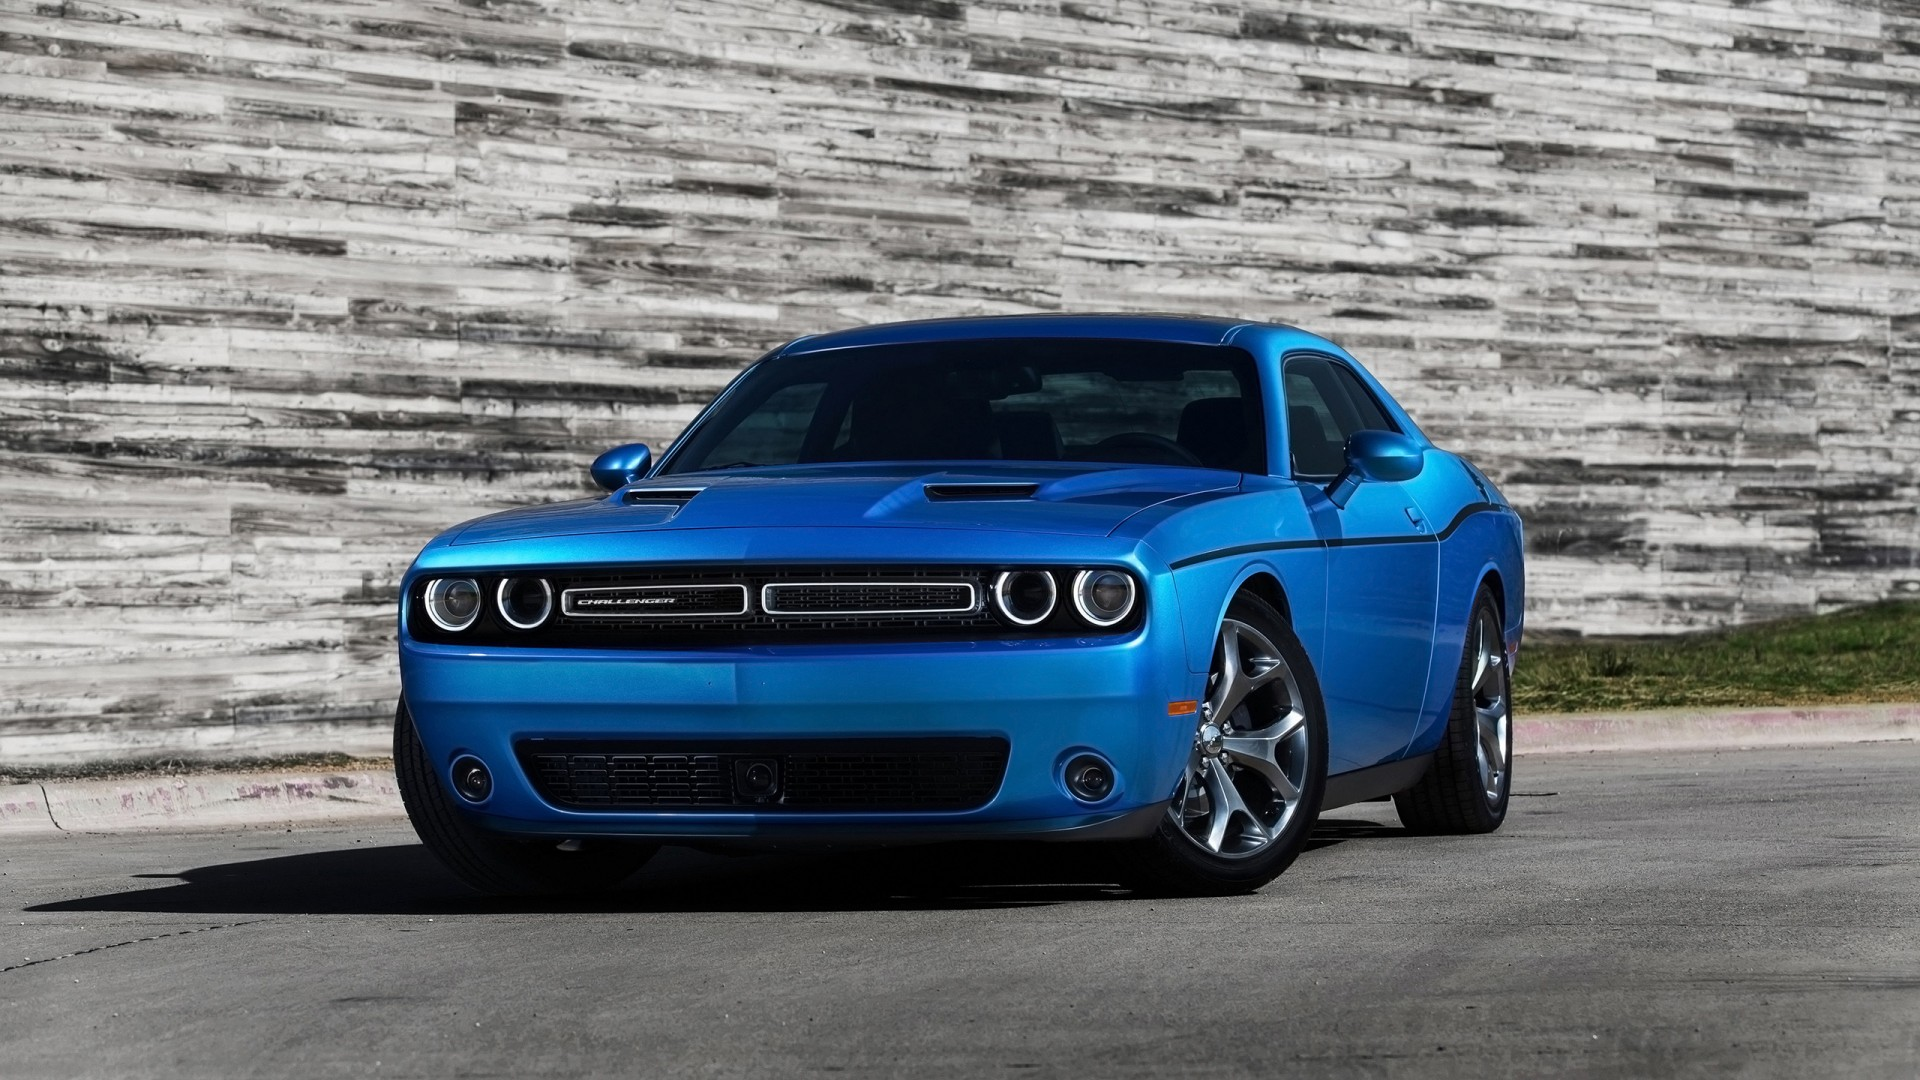 2015 Dodge Challenger Blue Wallpaper Hd Car Wallpapers